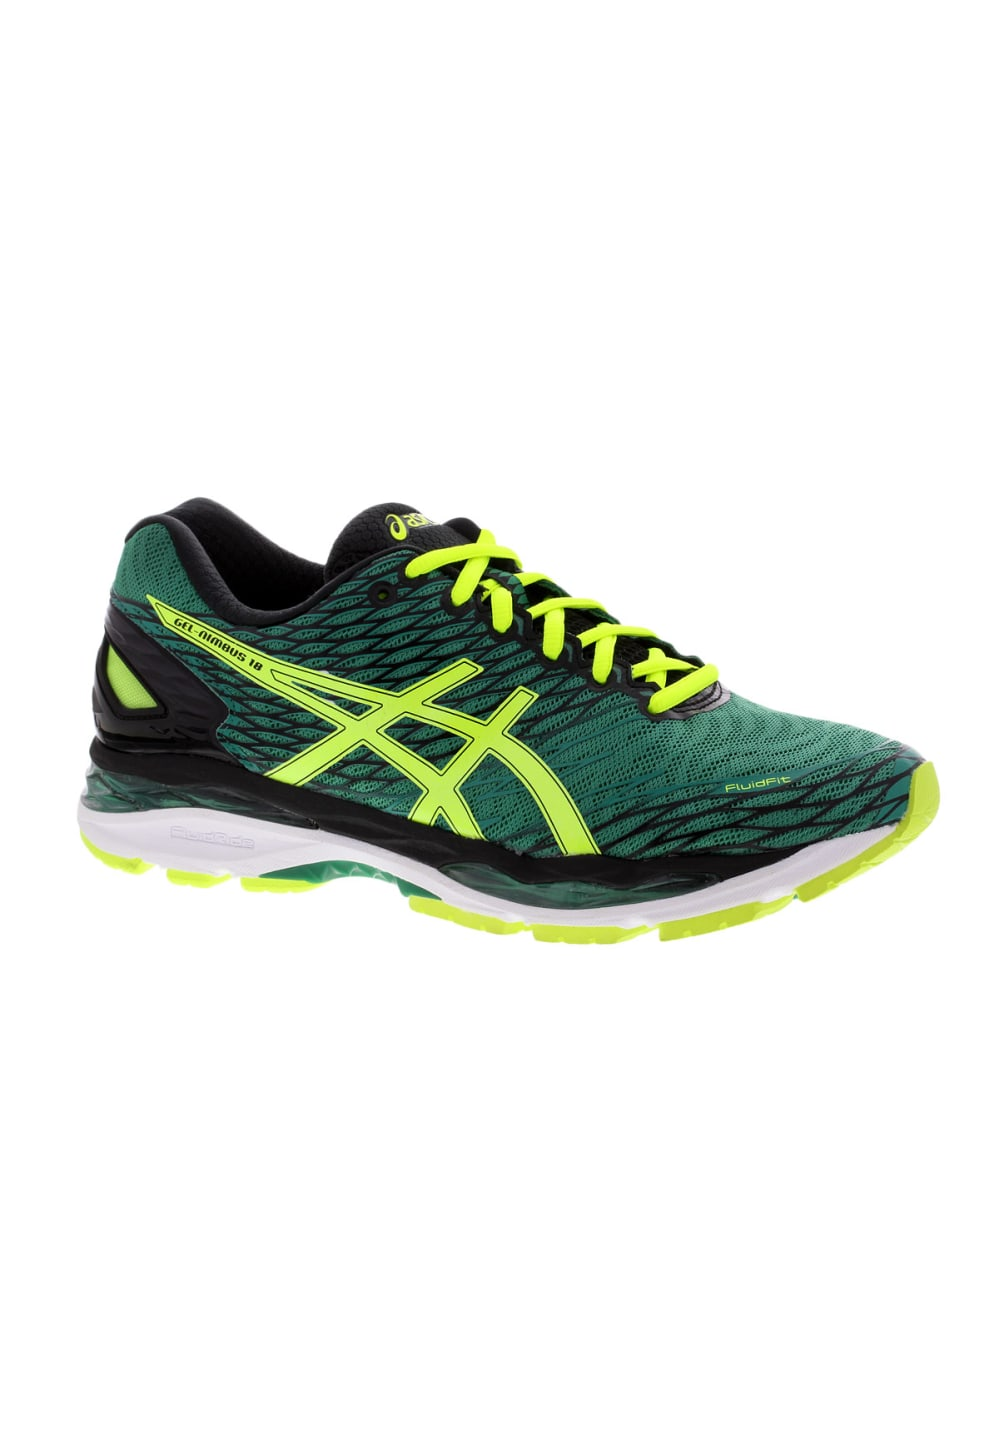 ASICS GEL-Nimbus 18 - Running shoes for Men - Green